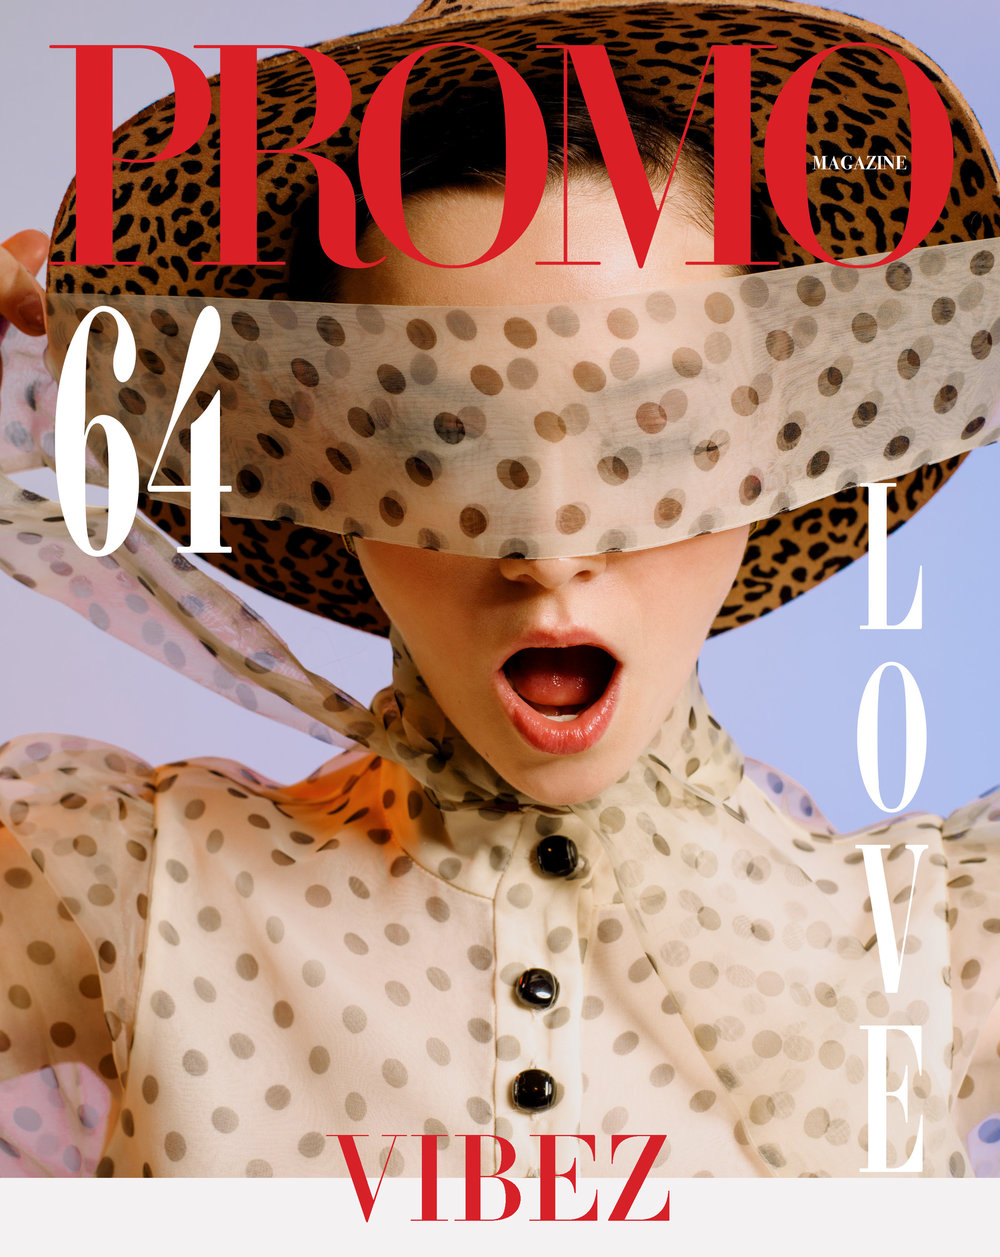 YOU CANVIBE TO THIS & FEEL LOVED - Issue 64: The beginning to a new era of fashion & retail.